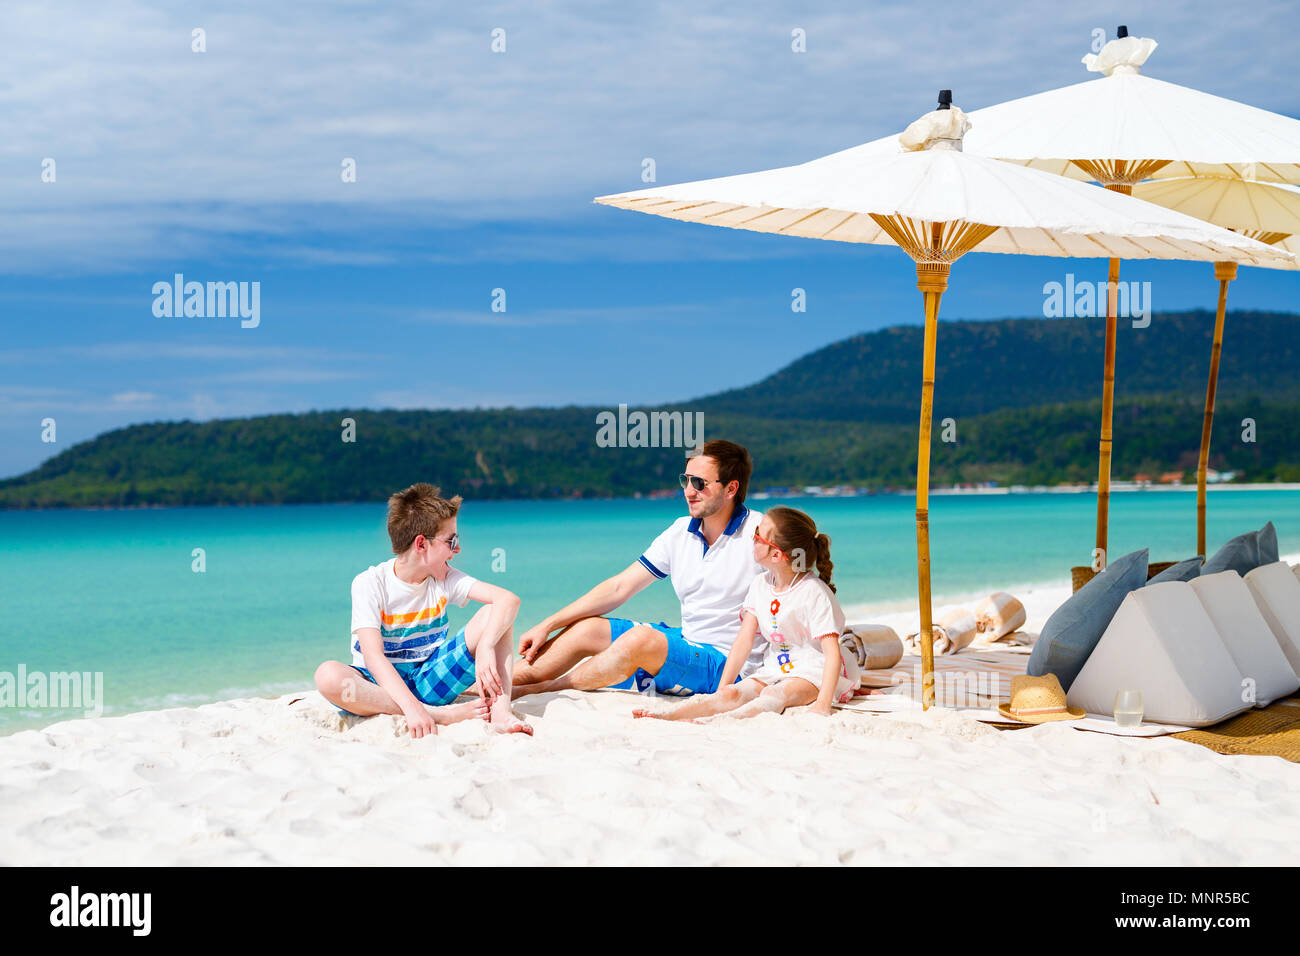 Family father and kids enjoying tropical beach vacation - Stock Image